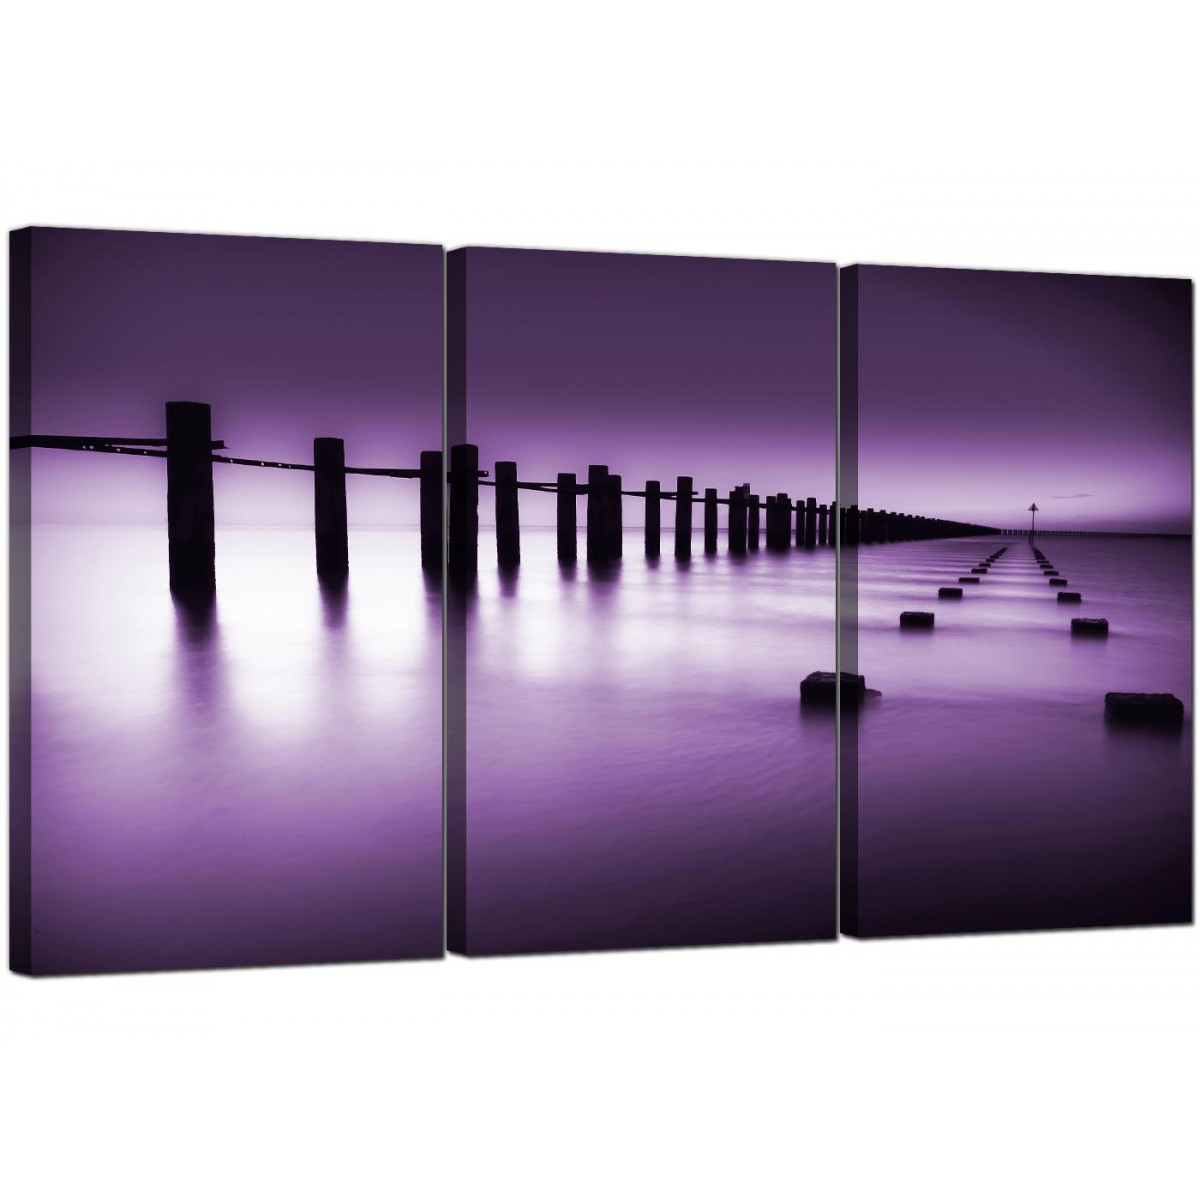 modern purple white beach scene landscape canvas set of 3 125cm